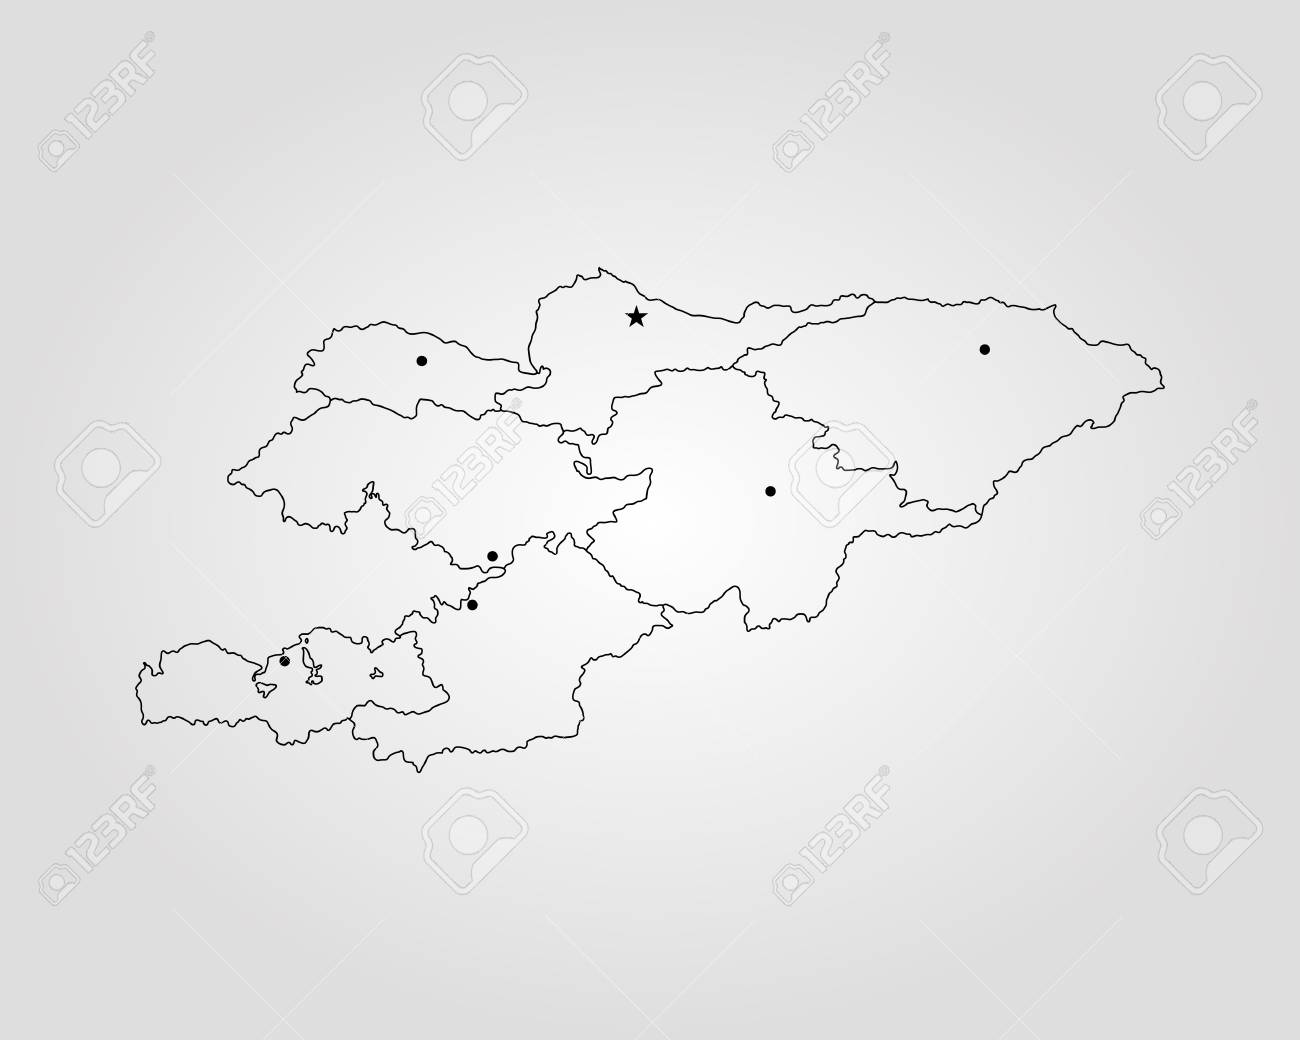 Map of Kyrgyzstan. Vector illustration. World map Kyrgyzstan World Map on russia world map, latvia world map, myanmar on world map, sudan world map, pakistan on world map, spain world map, nepal world map, lebanon world map, laos world map, iceland world map, azerbaijan world map, sierra leone world map, liberia world map, philippines world map, lesotho world map, mongolia world map, romania world map, malaysia world map, uzbekistan world map, somalia world map,